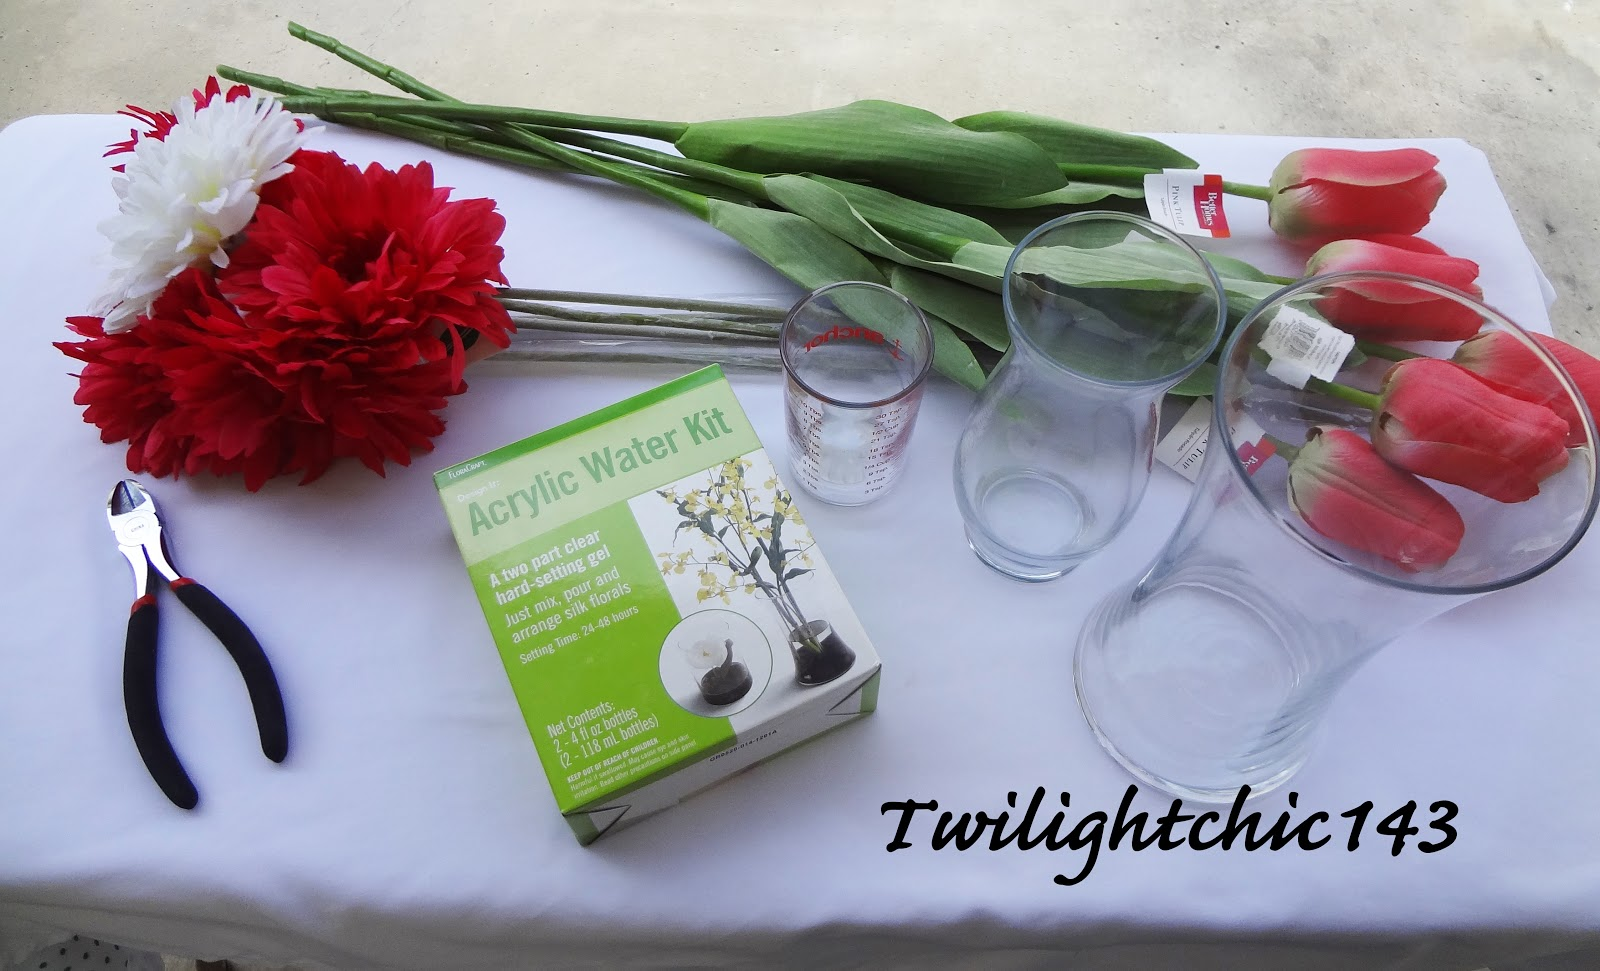 Diy acrylic water flower arrangementtwi chic thursday tins bloggin artificial flowerssilk flowers clear glass vase measuring cup wire cutter acrylic water kit mightylinksfo